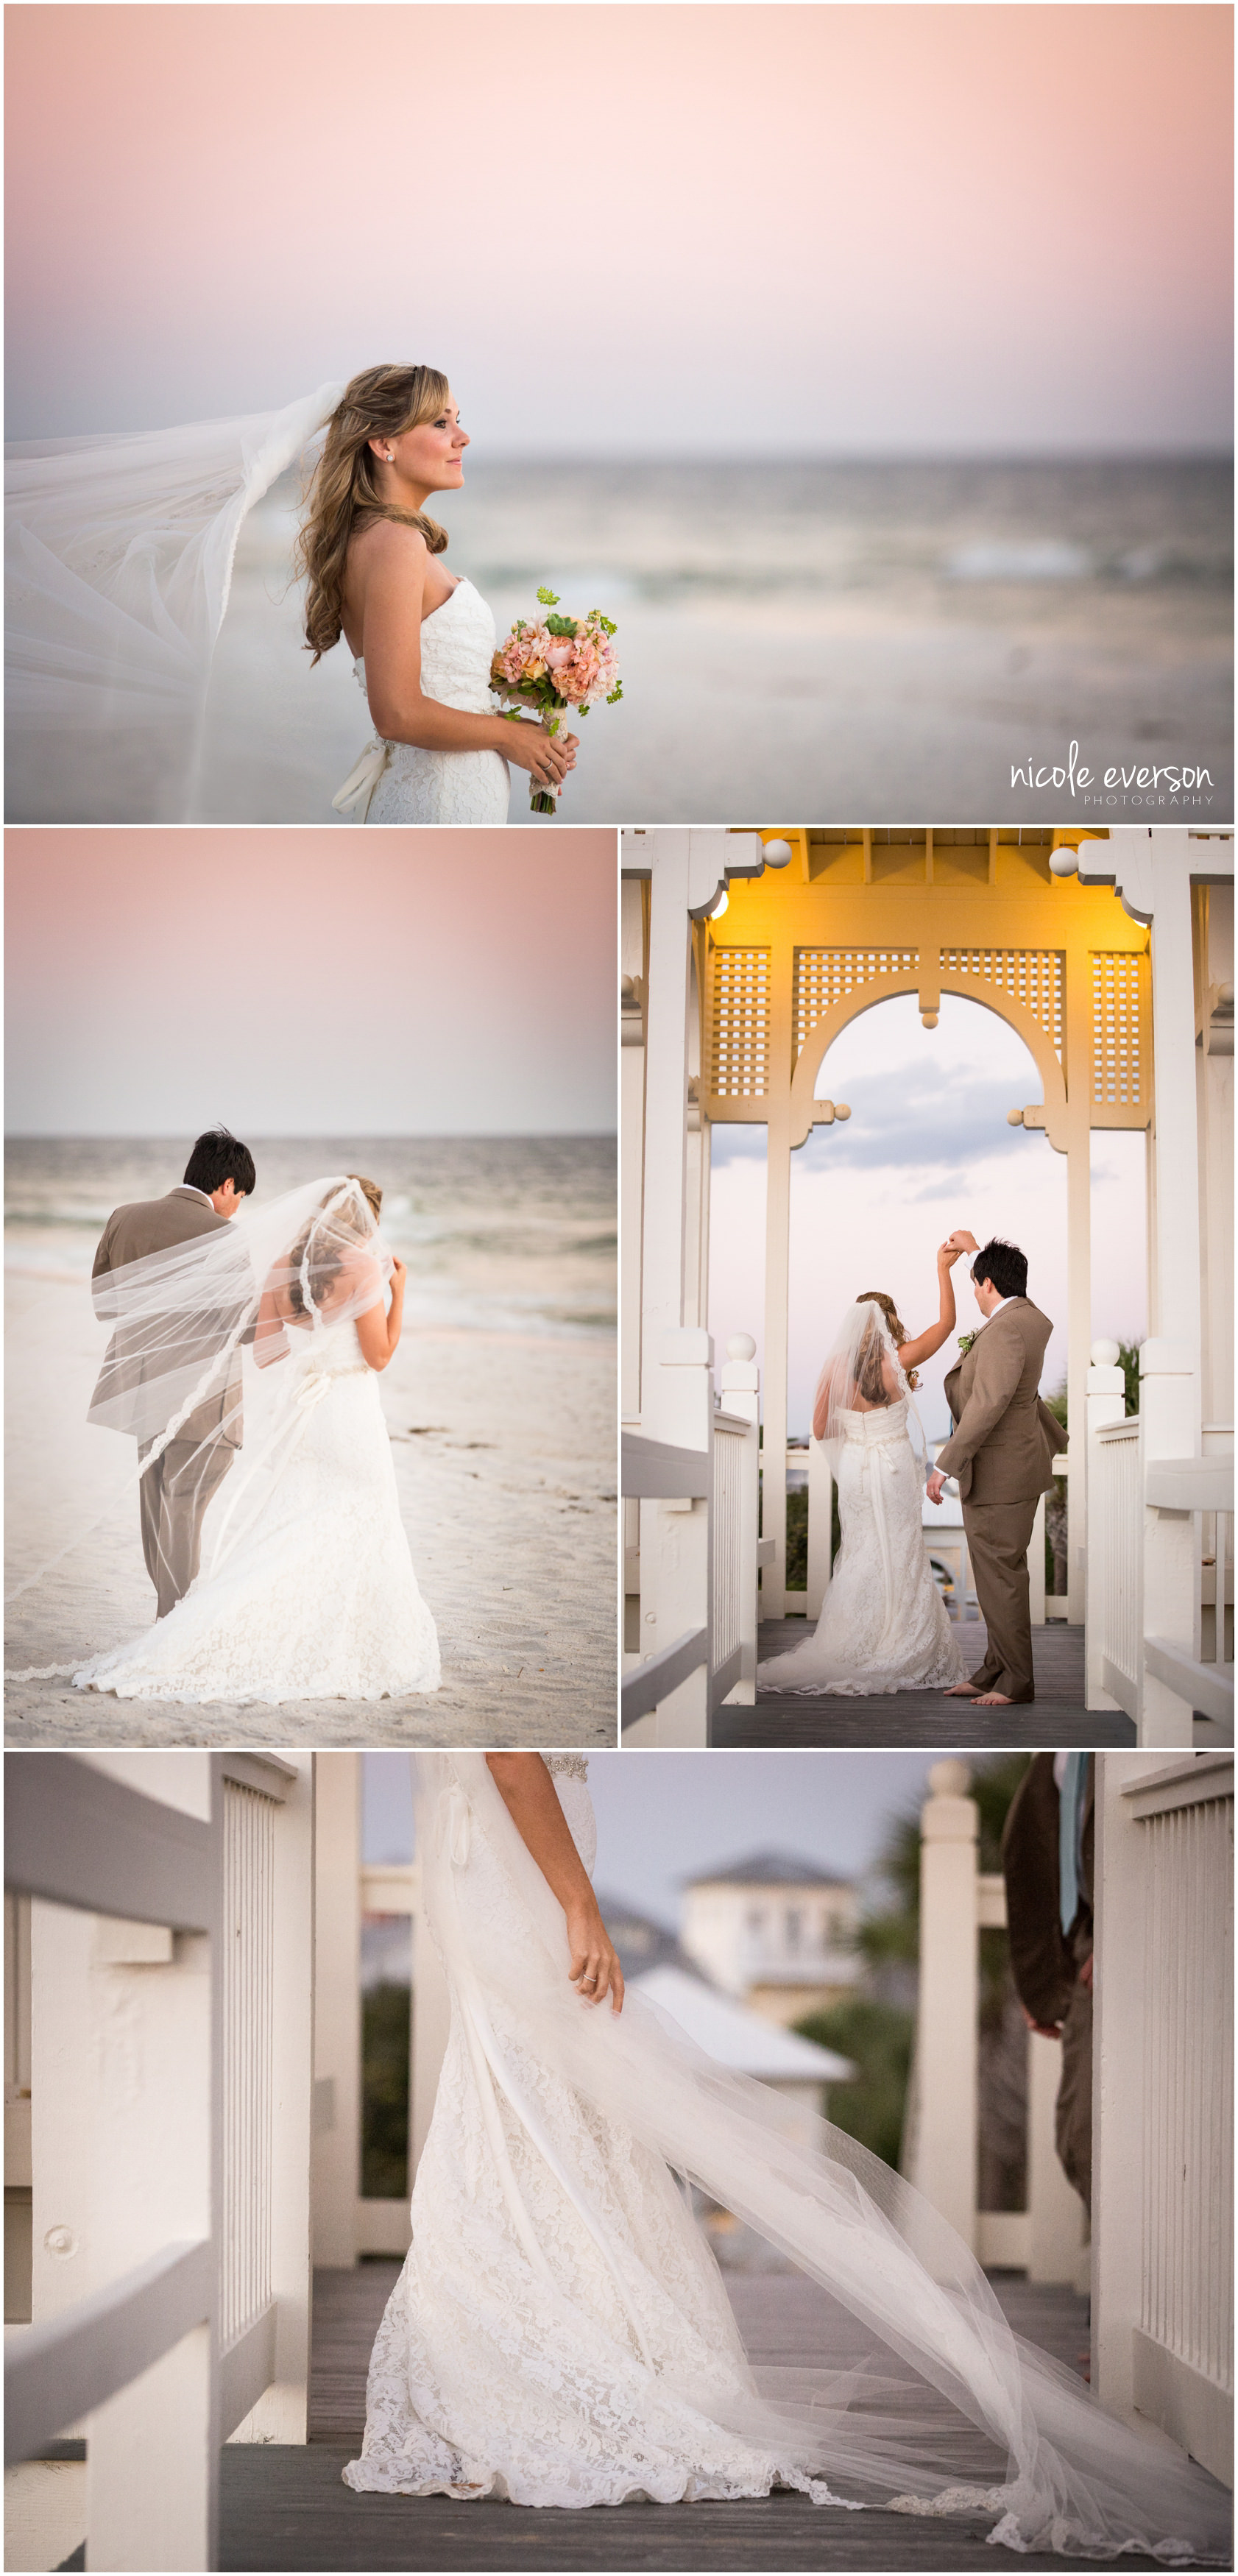 sunset Florida beach wedding photographer Nicole Everson Photography